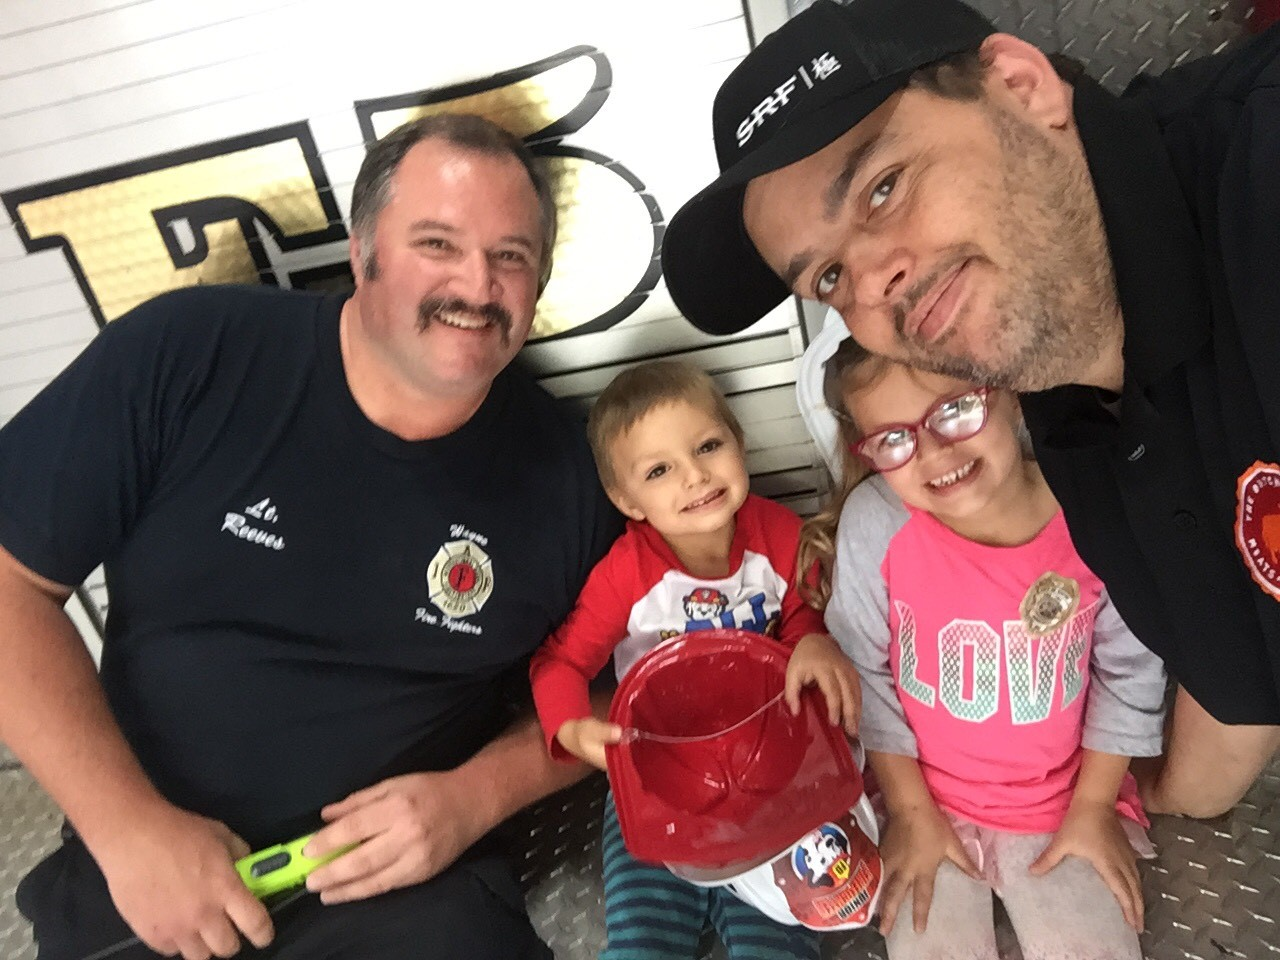 a selfie of two men and 2 kids smiling at the camera